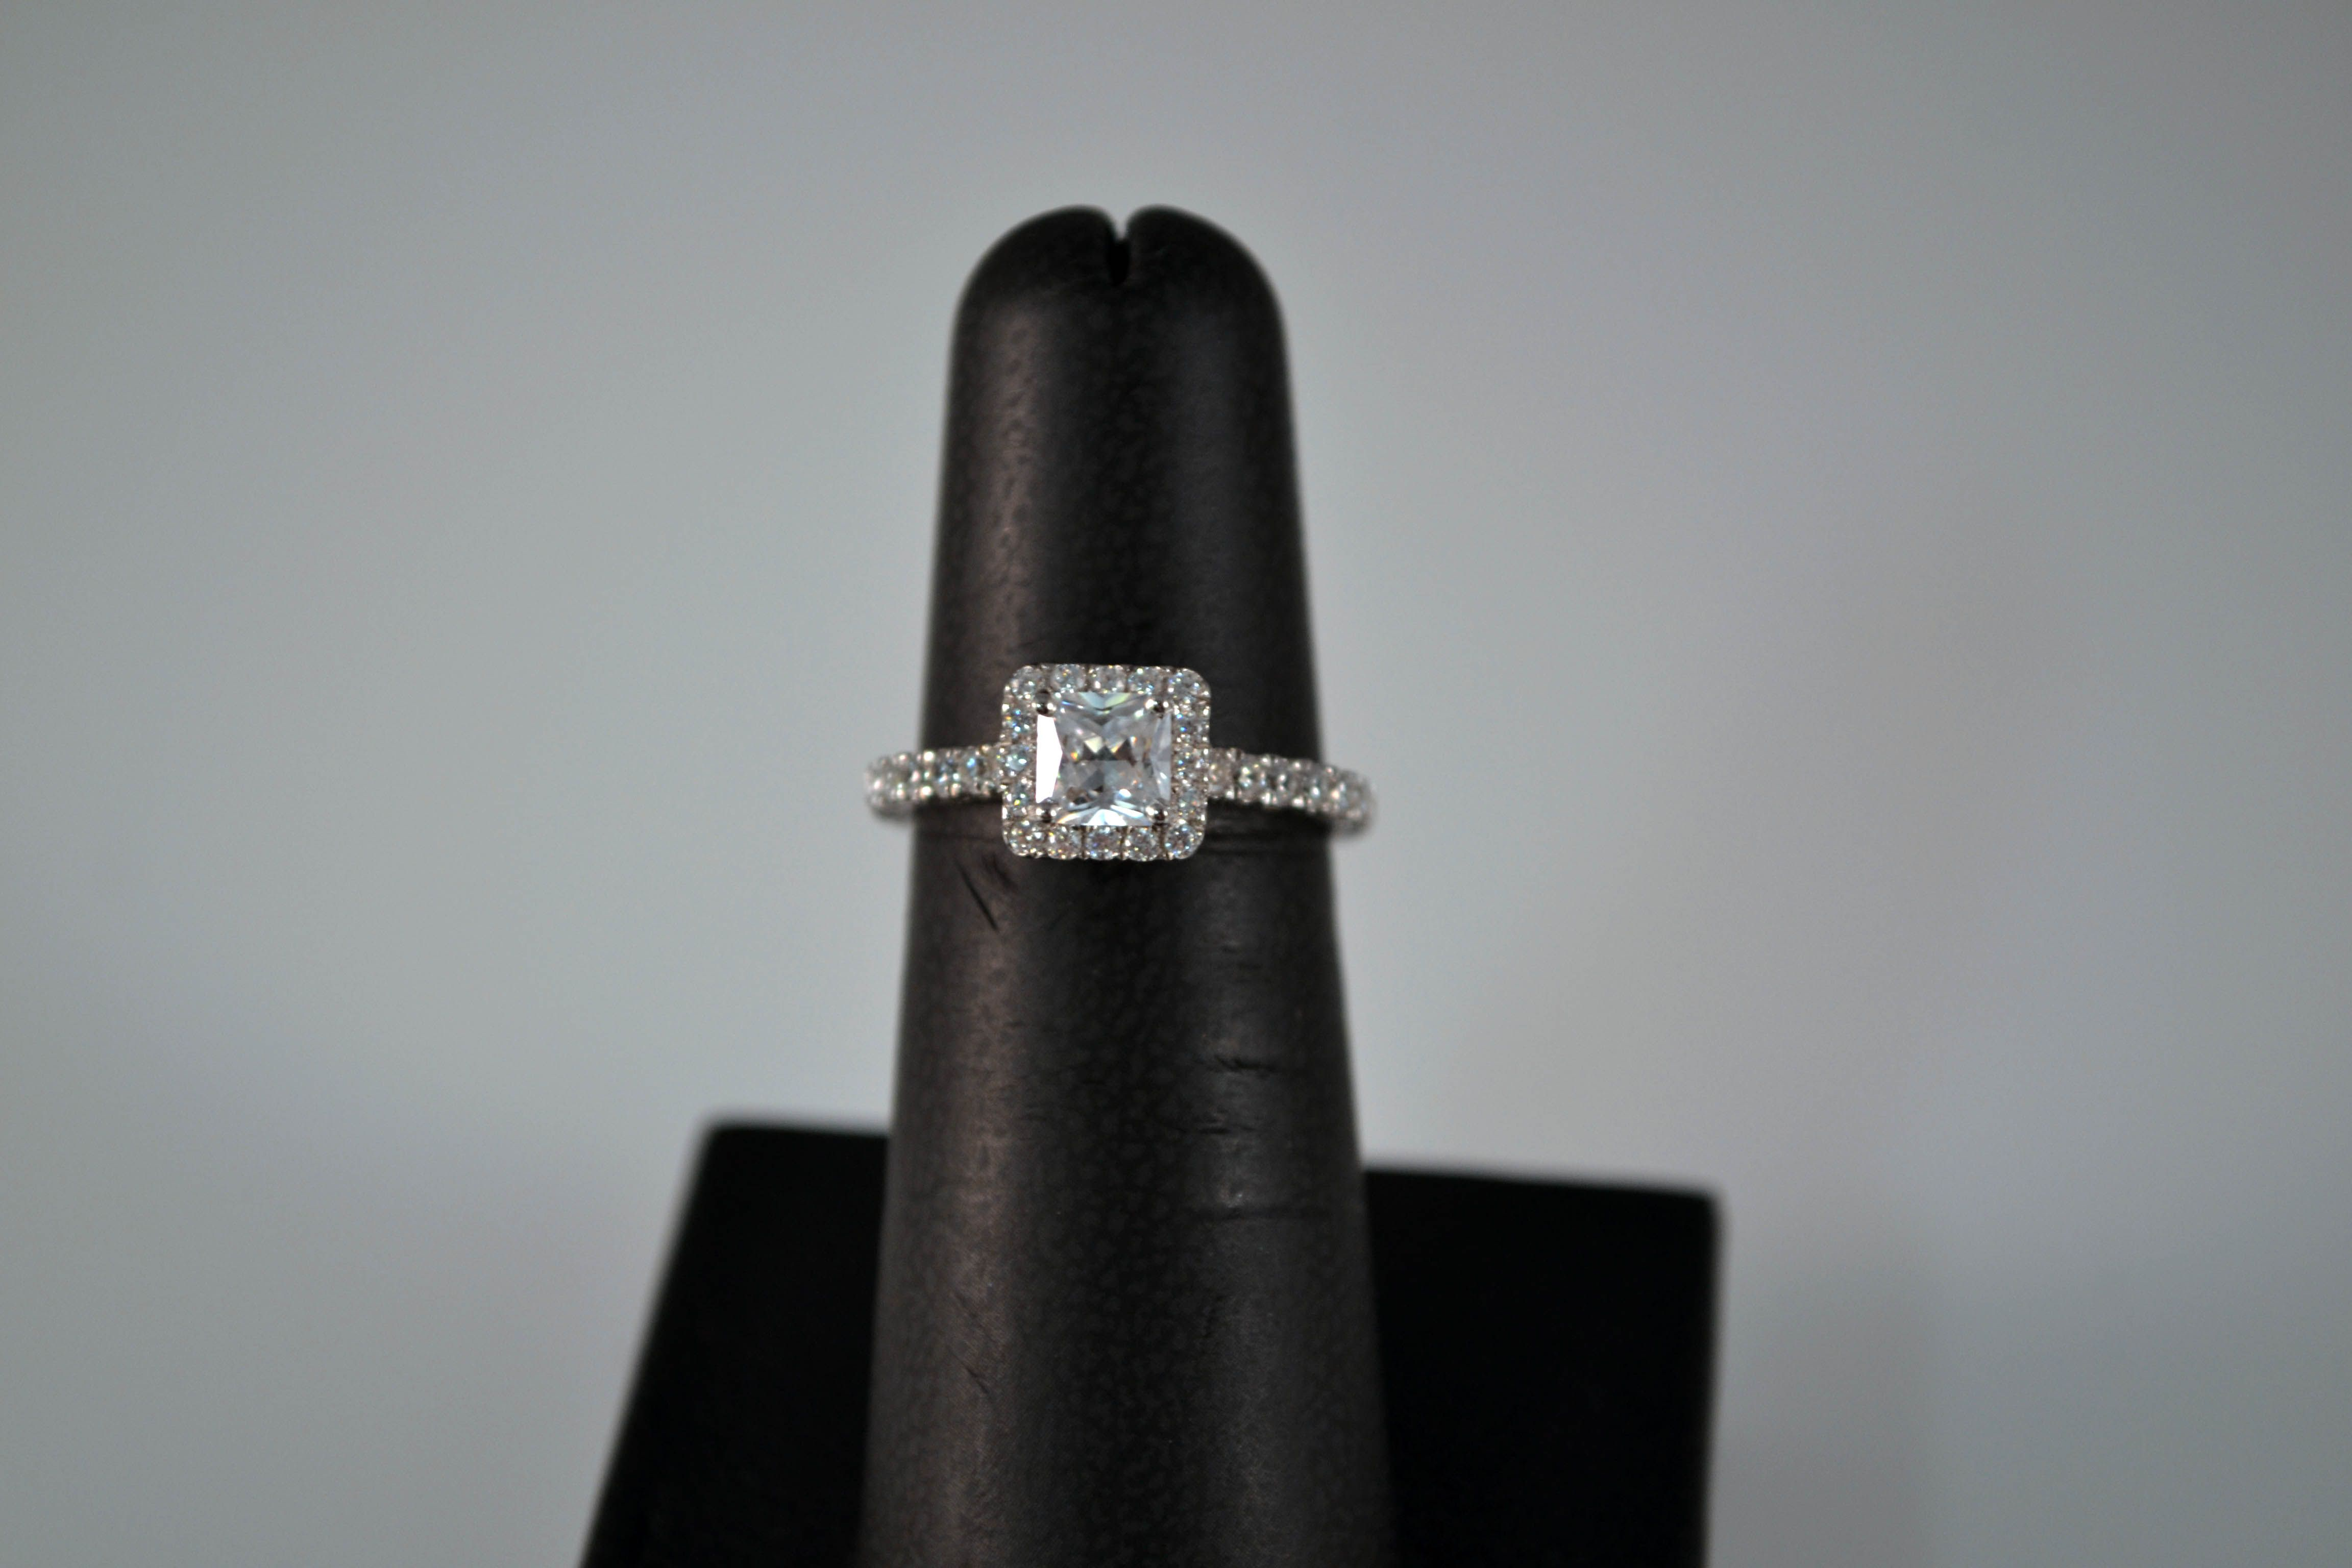 Beautiful Princess cut halo engagement ring with antique filagree design etched on the band! $125 on www.lexinicolejewelry.com ~ #princess #halo #engagement #bridal #bridetobe #antique #filagree #lexinicole #jewelryaddict #wedding